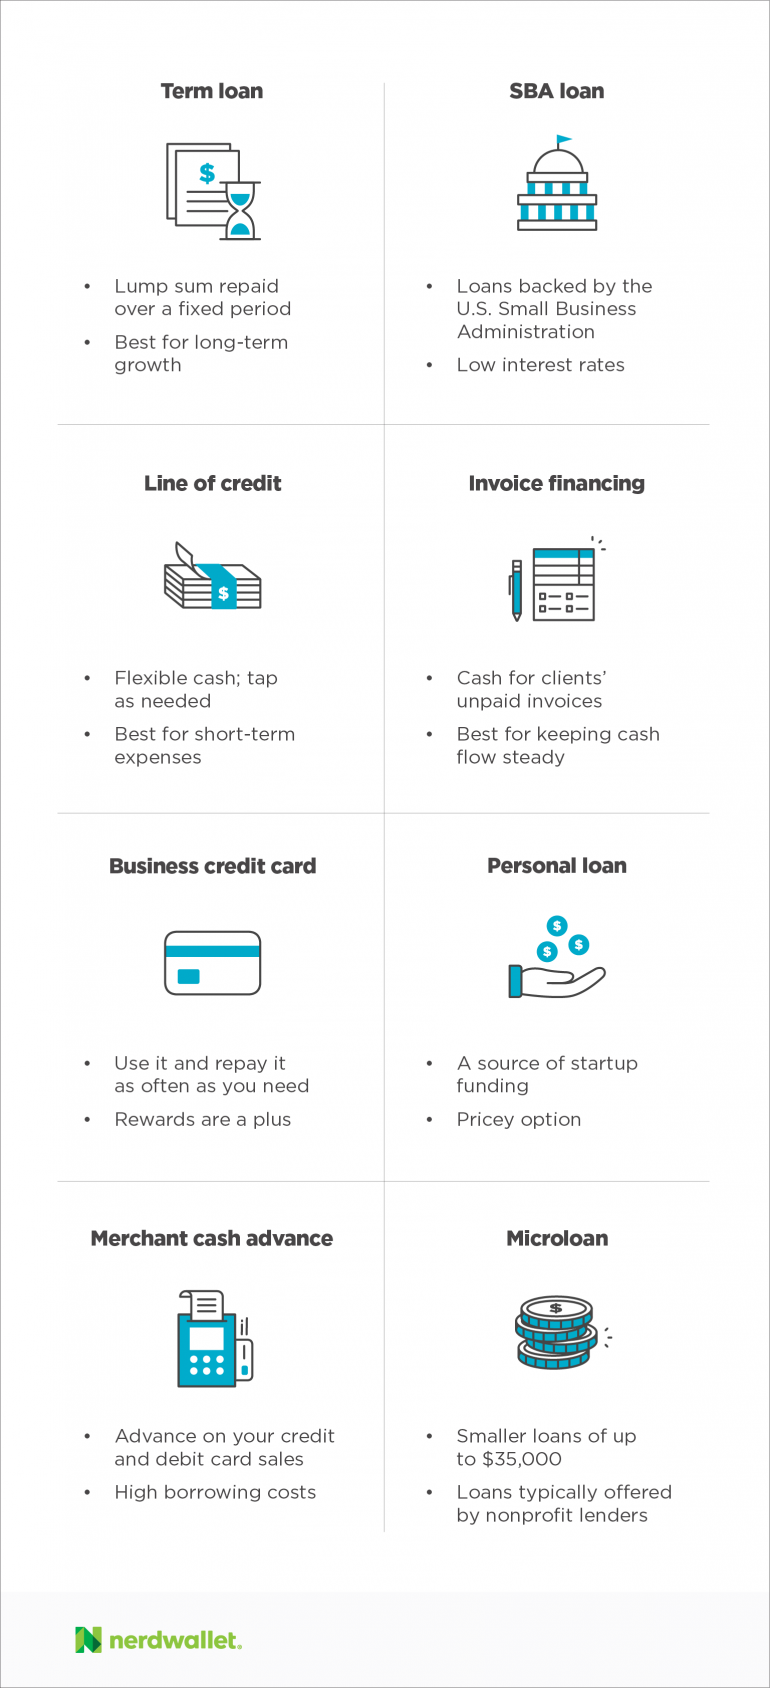 How to get a small business loan in 5 steps nerdwallet small business financing in simple terms colourmoves Gallery